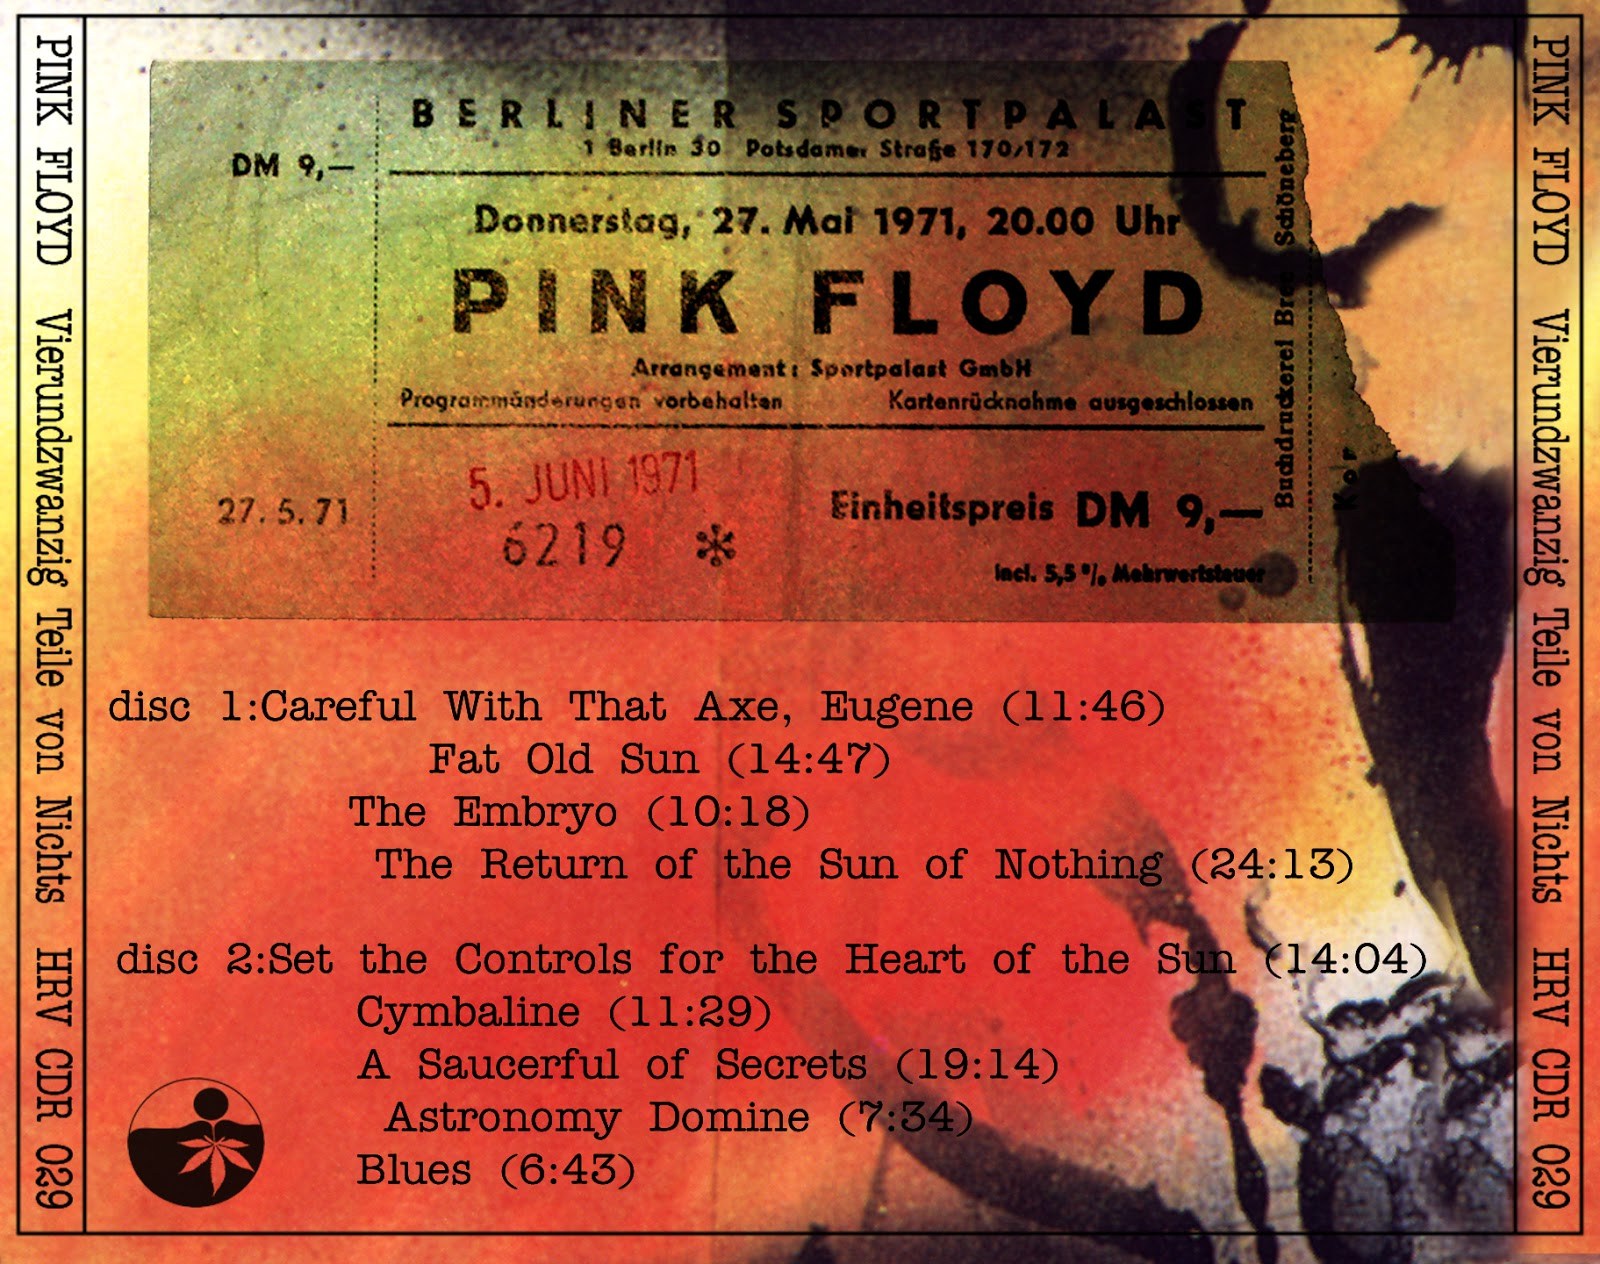 The Witchwood Records: Pink Floyd - Berlin 1971